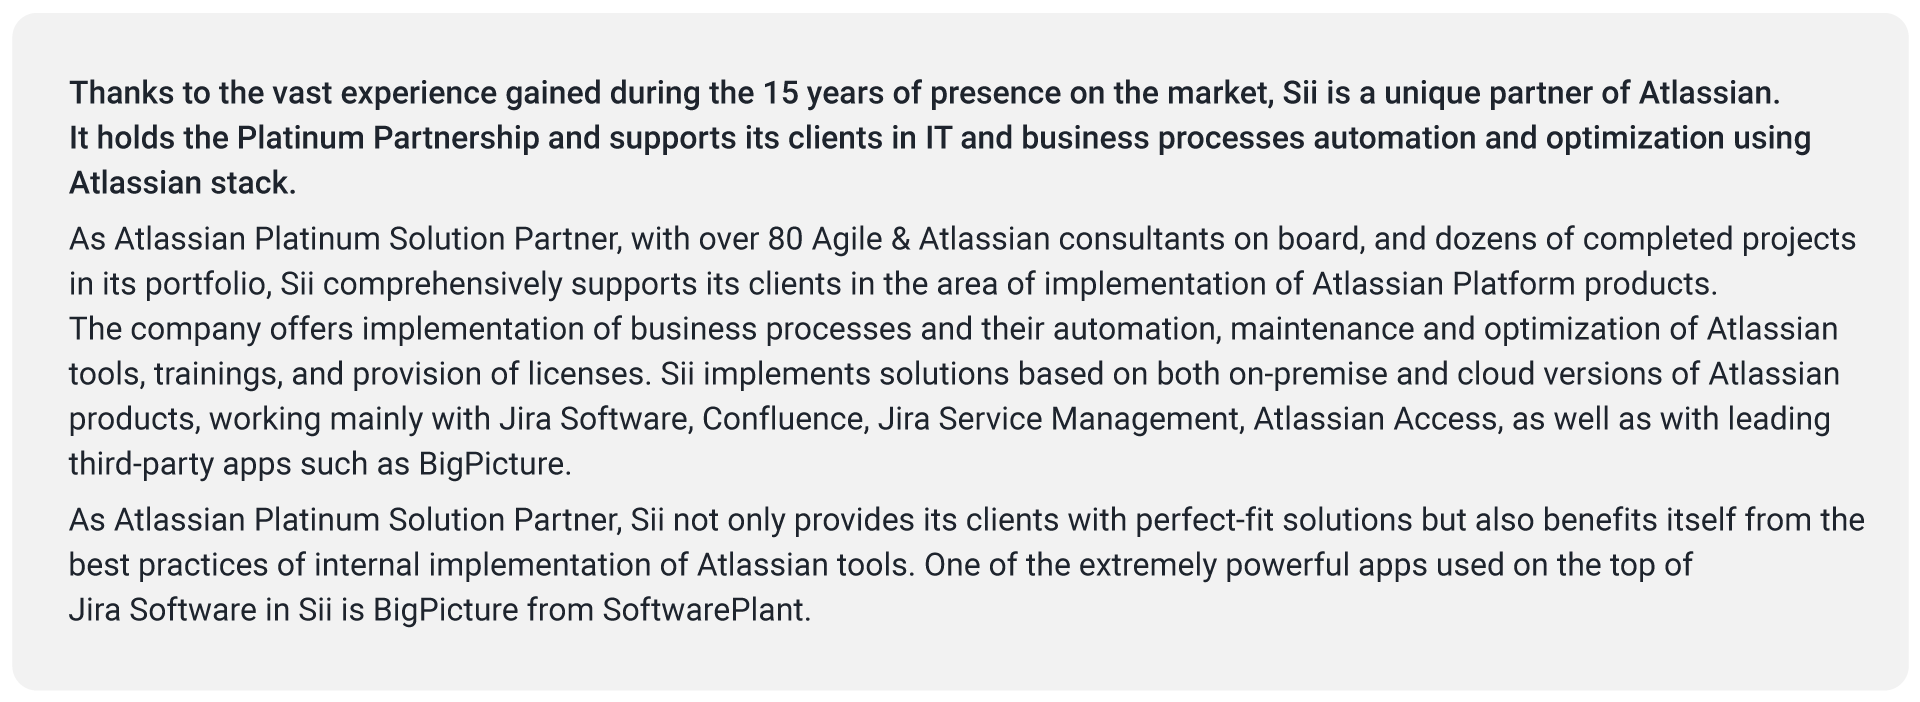 Thanks to the vast experience gained during the 15 years of presence on the market, Sii is a unique partner of Atlassian. It holds the Platinum Partnership and supports its clients in IT and business processes automation and optimization using Atlassian stack. As Atlassian Platinum Solution Partner, with over 80 Agile & Atlassian consultants on board, and dozens of completed projects in its portfolio, Sii comprehensively supports its clients in the area of implementation of Atlassian Platform products. The company offers implementation of business processes and their automation, maintenance and optimization of Atlassian tools, trainings, and provision of licenses. Sii implements solutions based on both on-premise and cloud versions of Atlassian products, working mainly with Jira Software, Confluence, Jira Service Management, Atlassian Access, as well as with leading third-party apps such as BigPicture. As Atlassian Platinum Solution Partner, Sii not only provides its clients with perfect-fit solutions but also benefits itself from the best practices of internal implementation of Atlassian tools. One of the extremely powerful apps used on the top of Jira Software in Sii is BigPicture from SoftwarePlant.